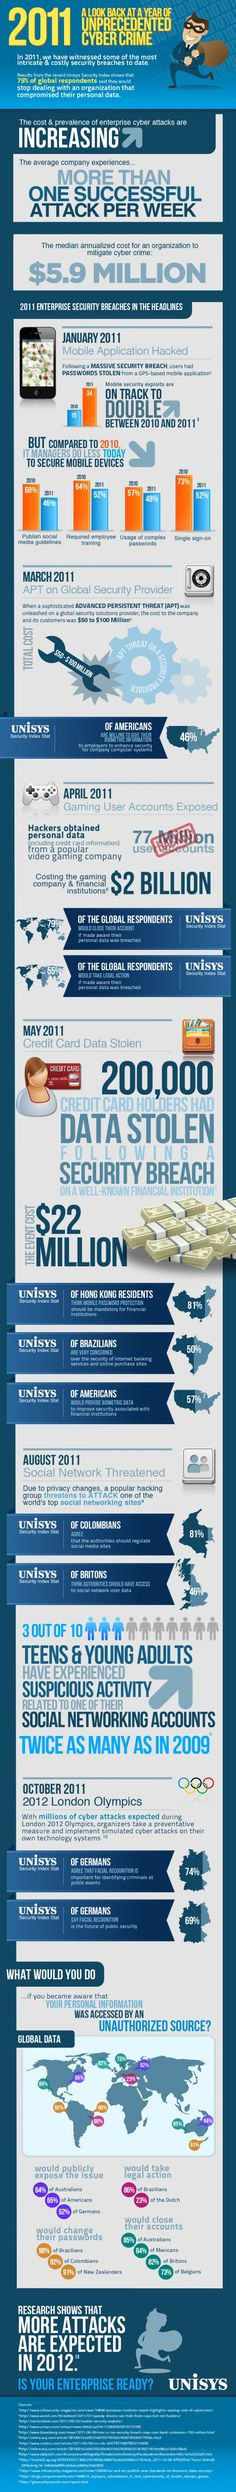 The real cost of cybercrime - Infographic from 2011